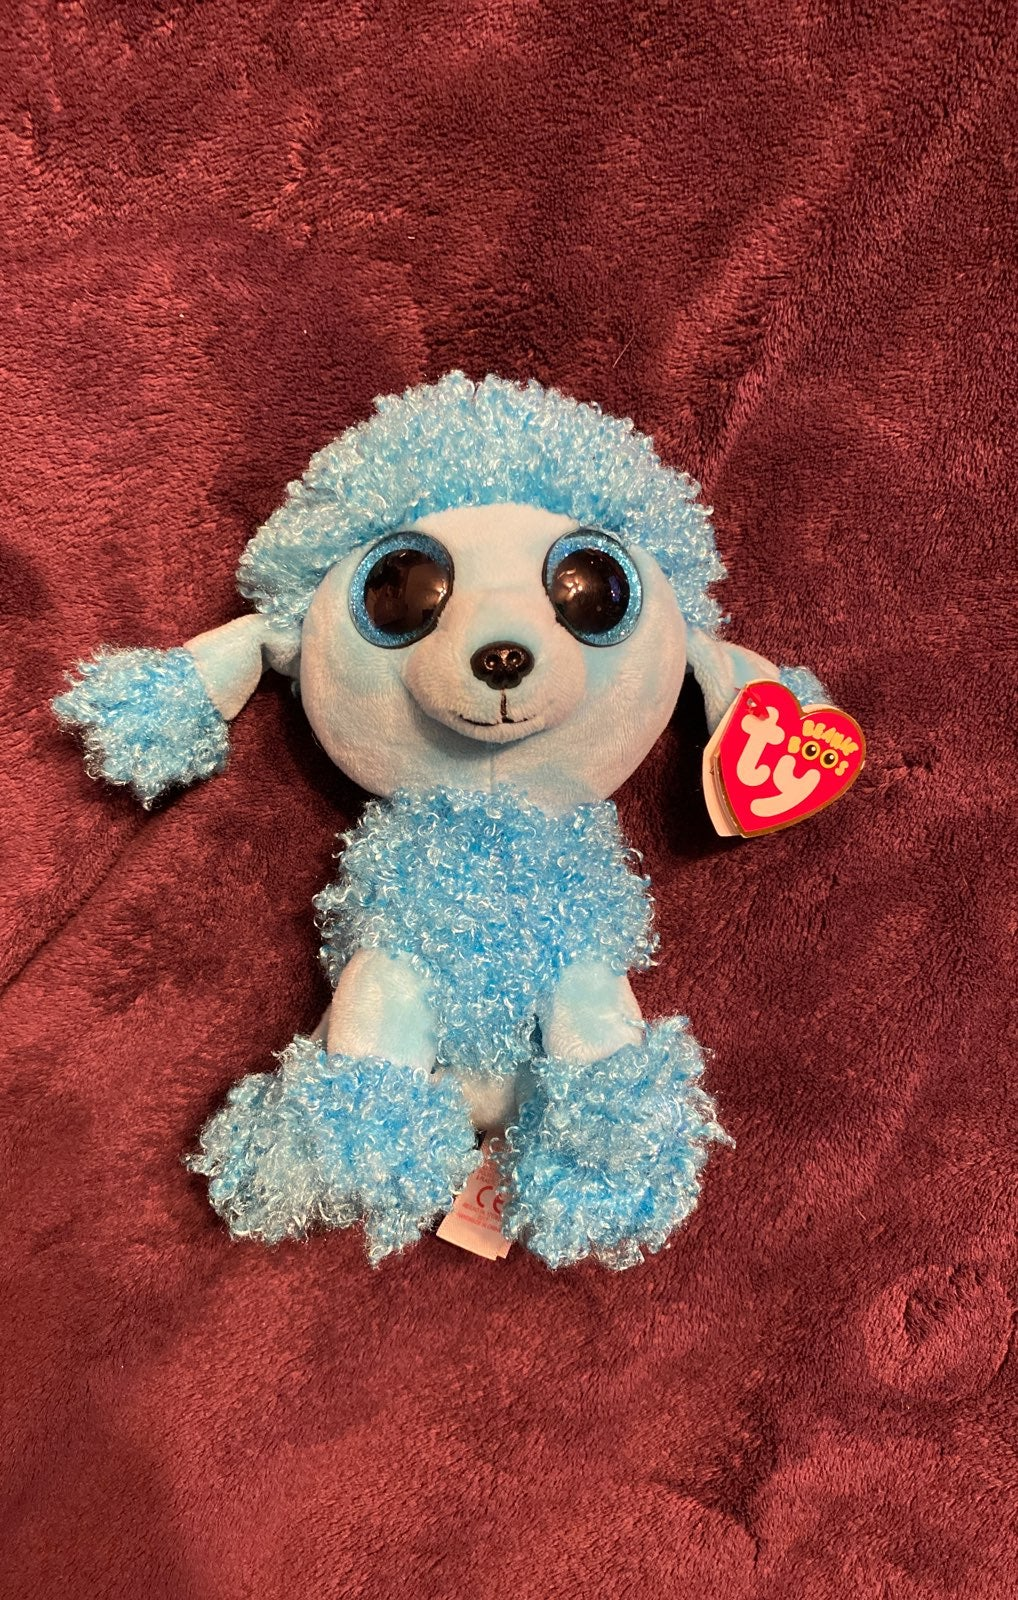 Ty Beanie Boo mandy blue poodle